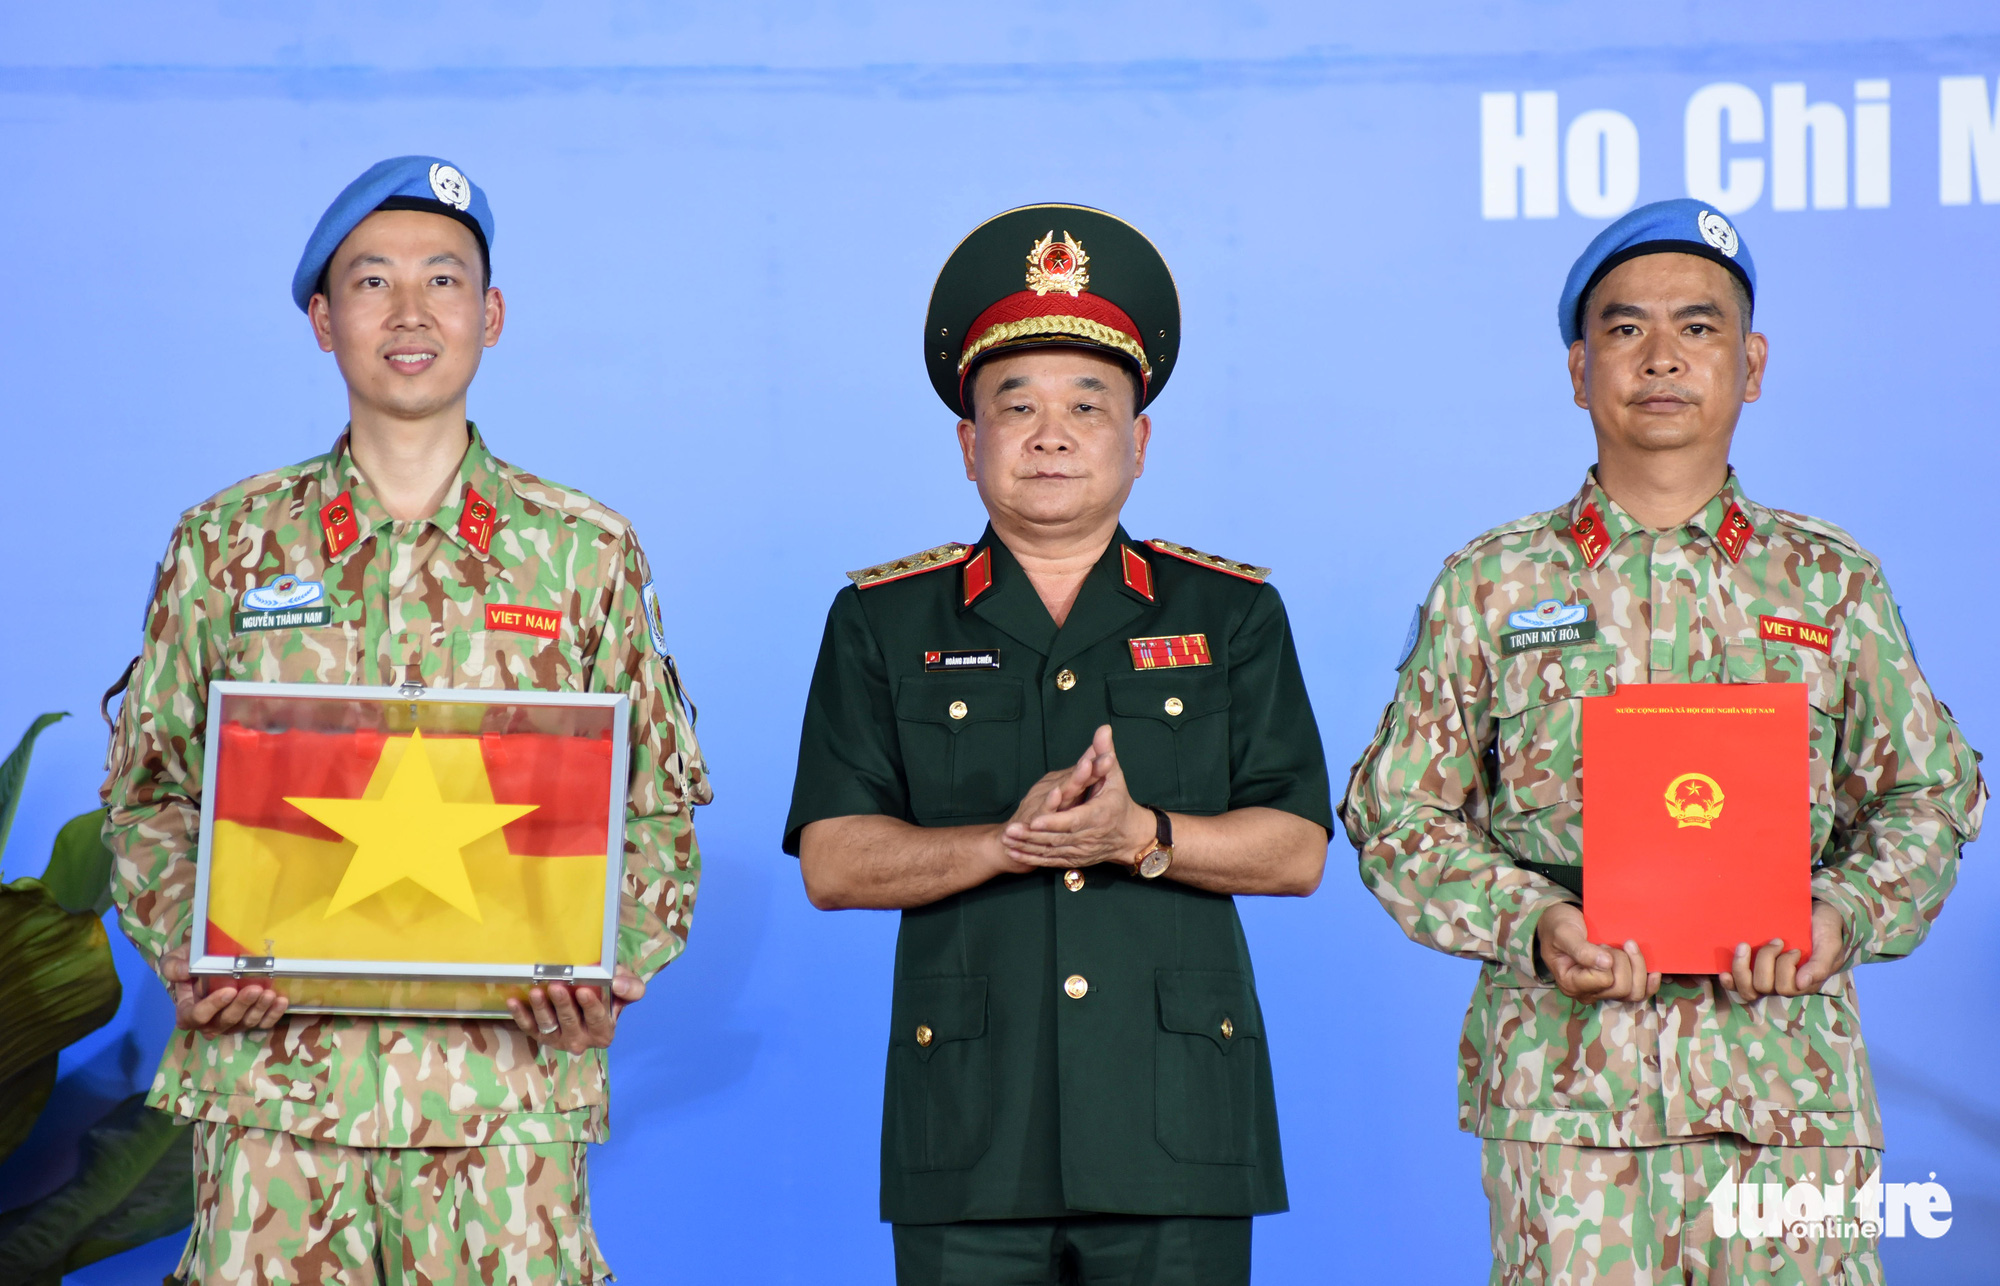 Deputy Minister of National Defense Hoang Xuan Chien hands souvenirs and national flags to soldiers of the third Level-2 Field Hospital during a ceremony in Ho Chi Minh City, March 23, 2021. Photo: Duyen Phan / Tuoi Tre